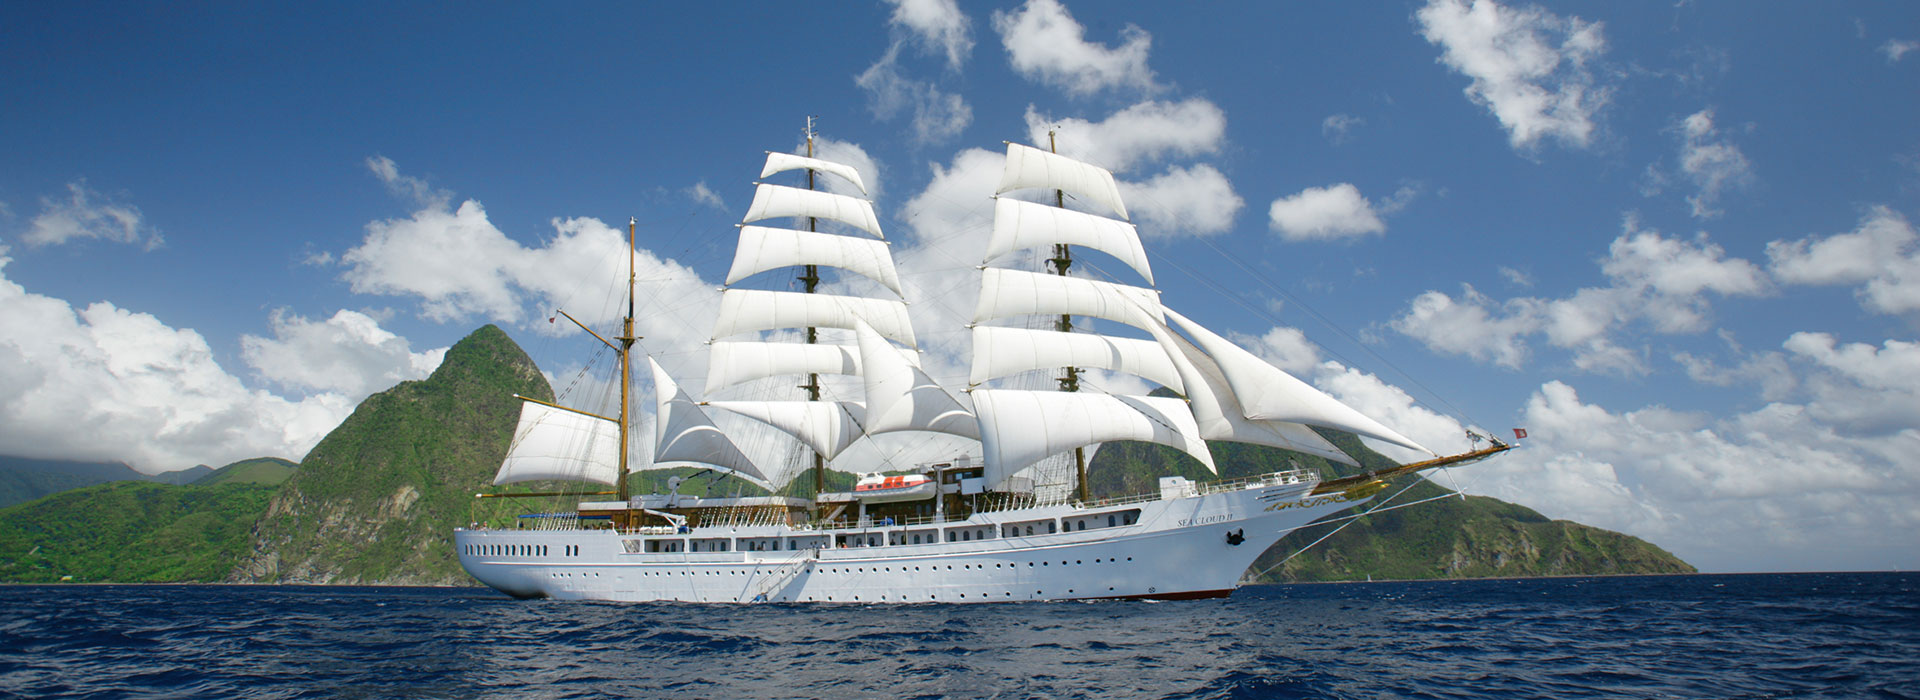 Segelschiff Sea Cloud II